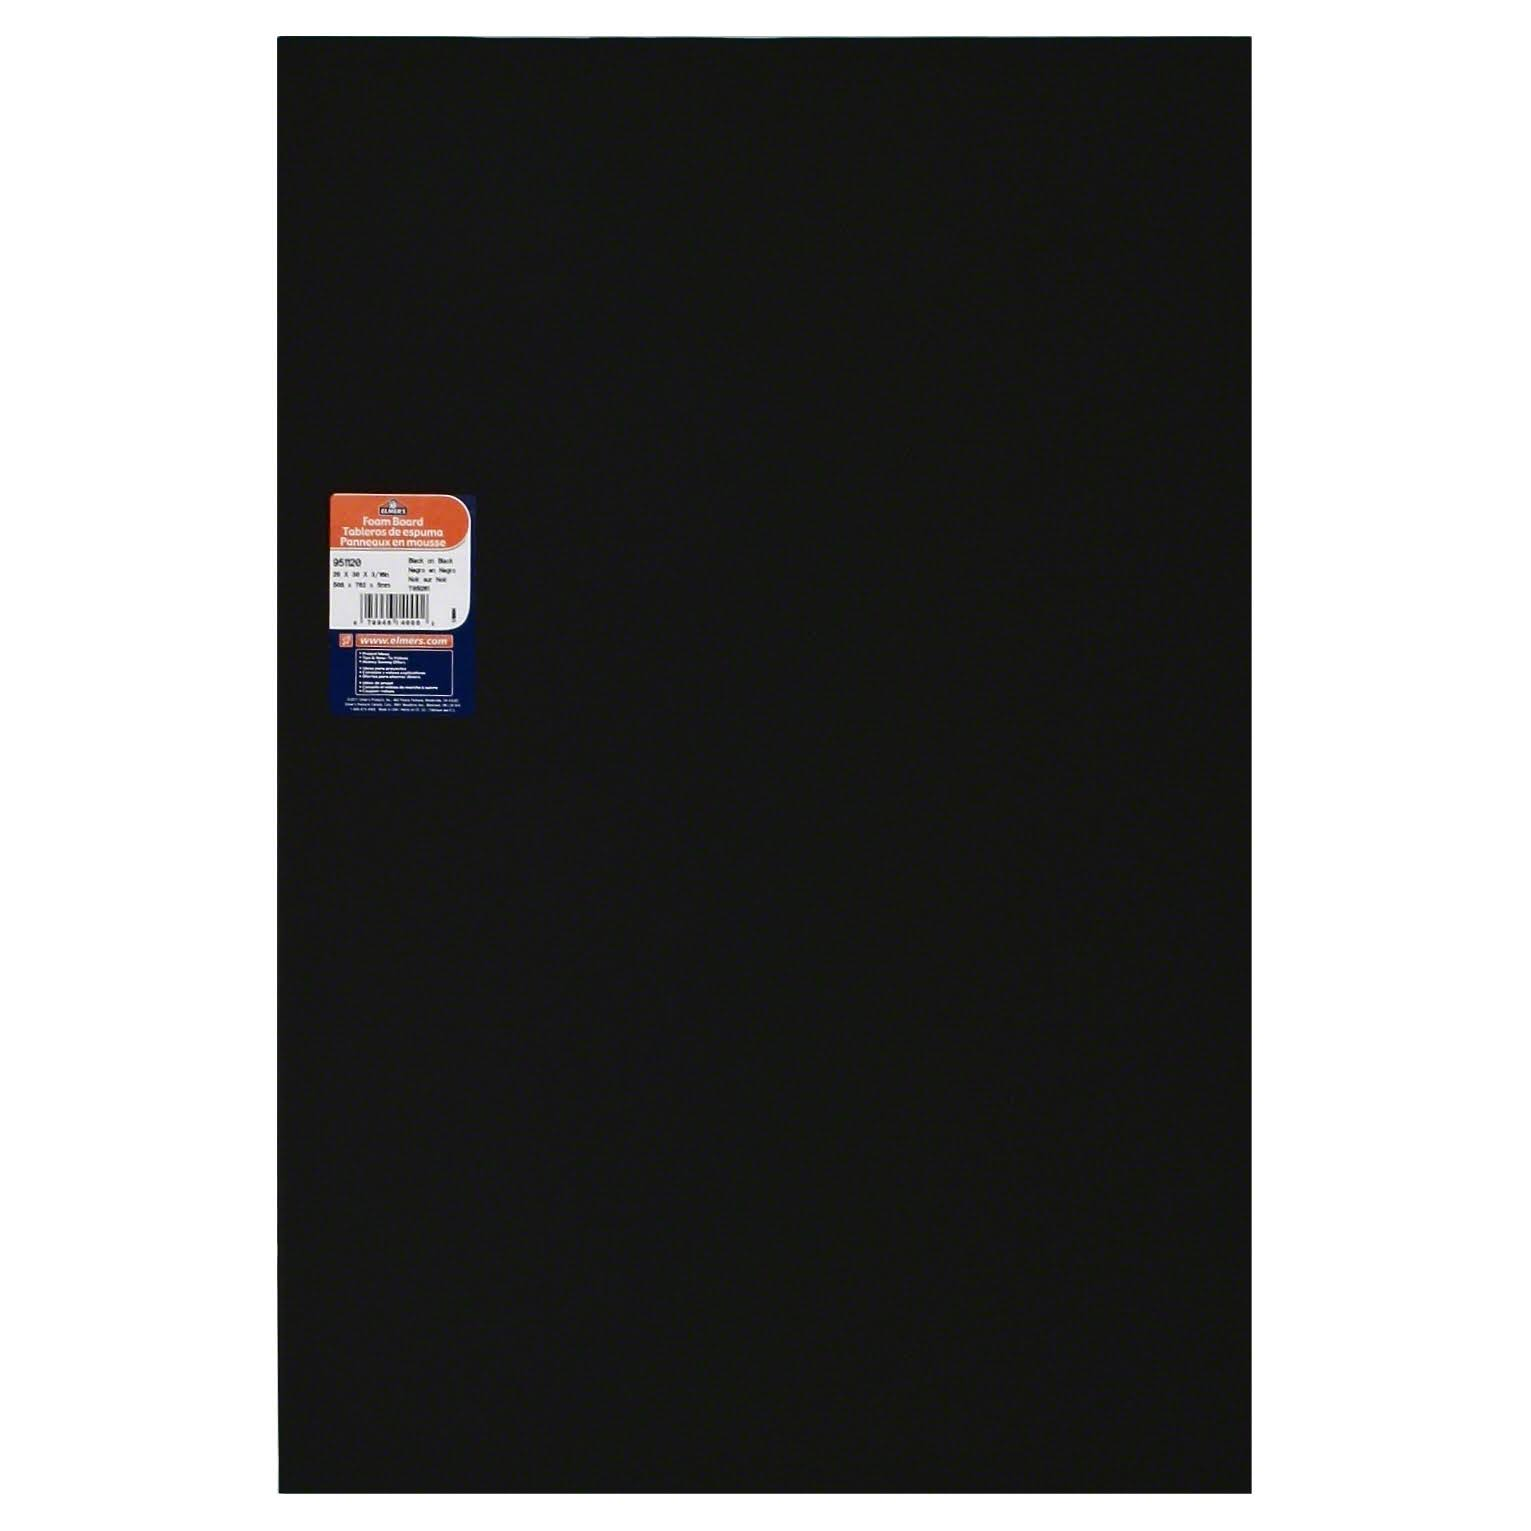 "Elmer's Colored Foam Boards - 20"" X 30"", 3/16"" Thick, Black"